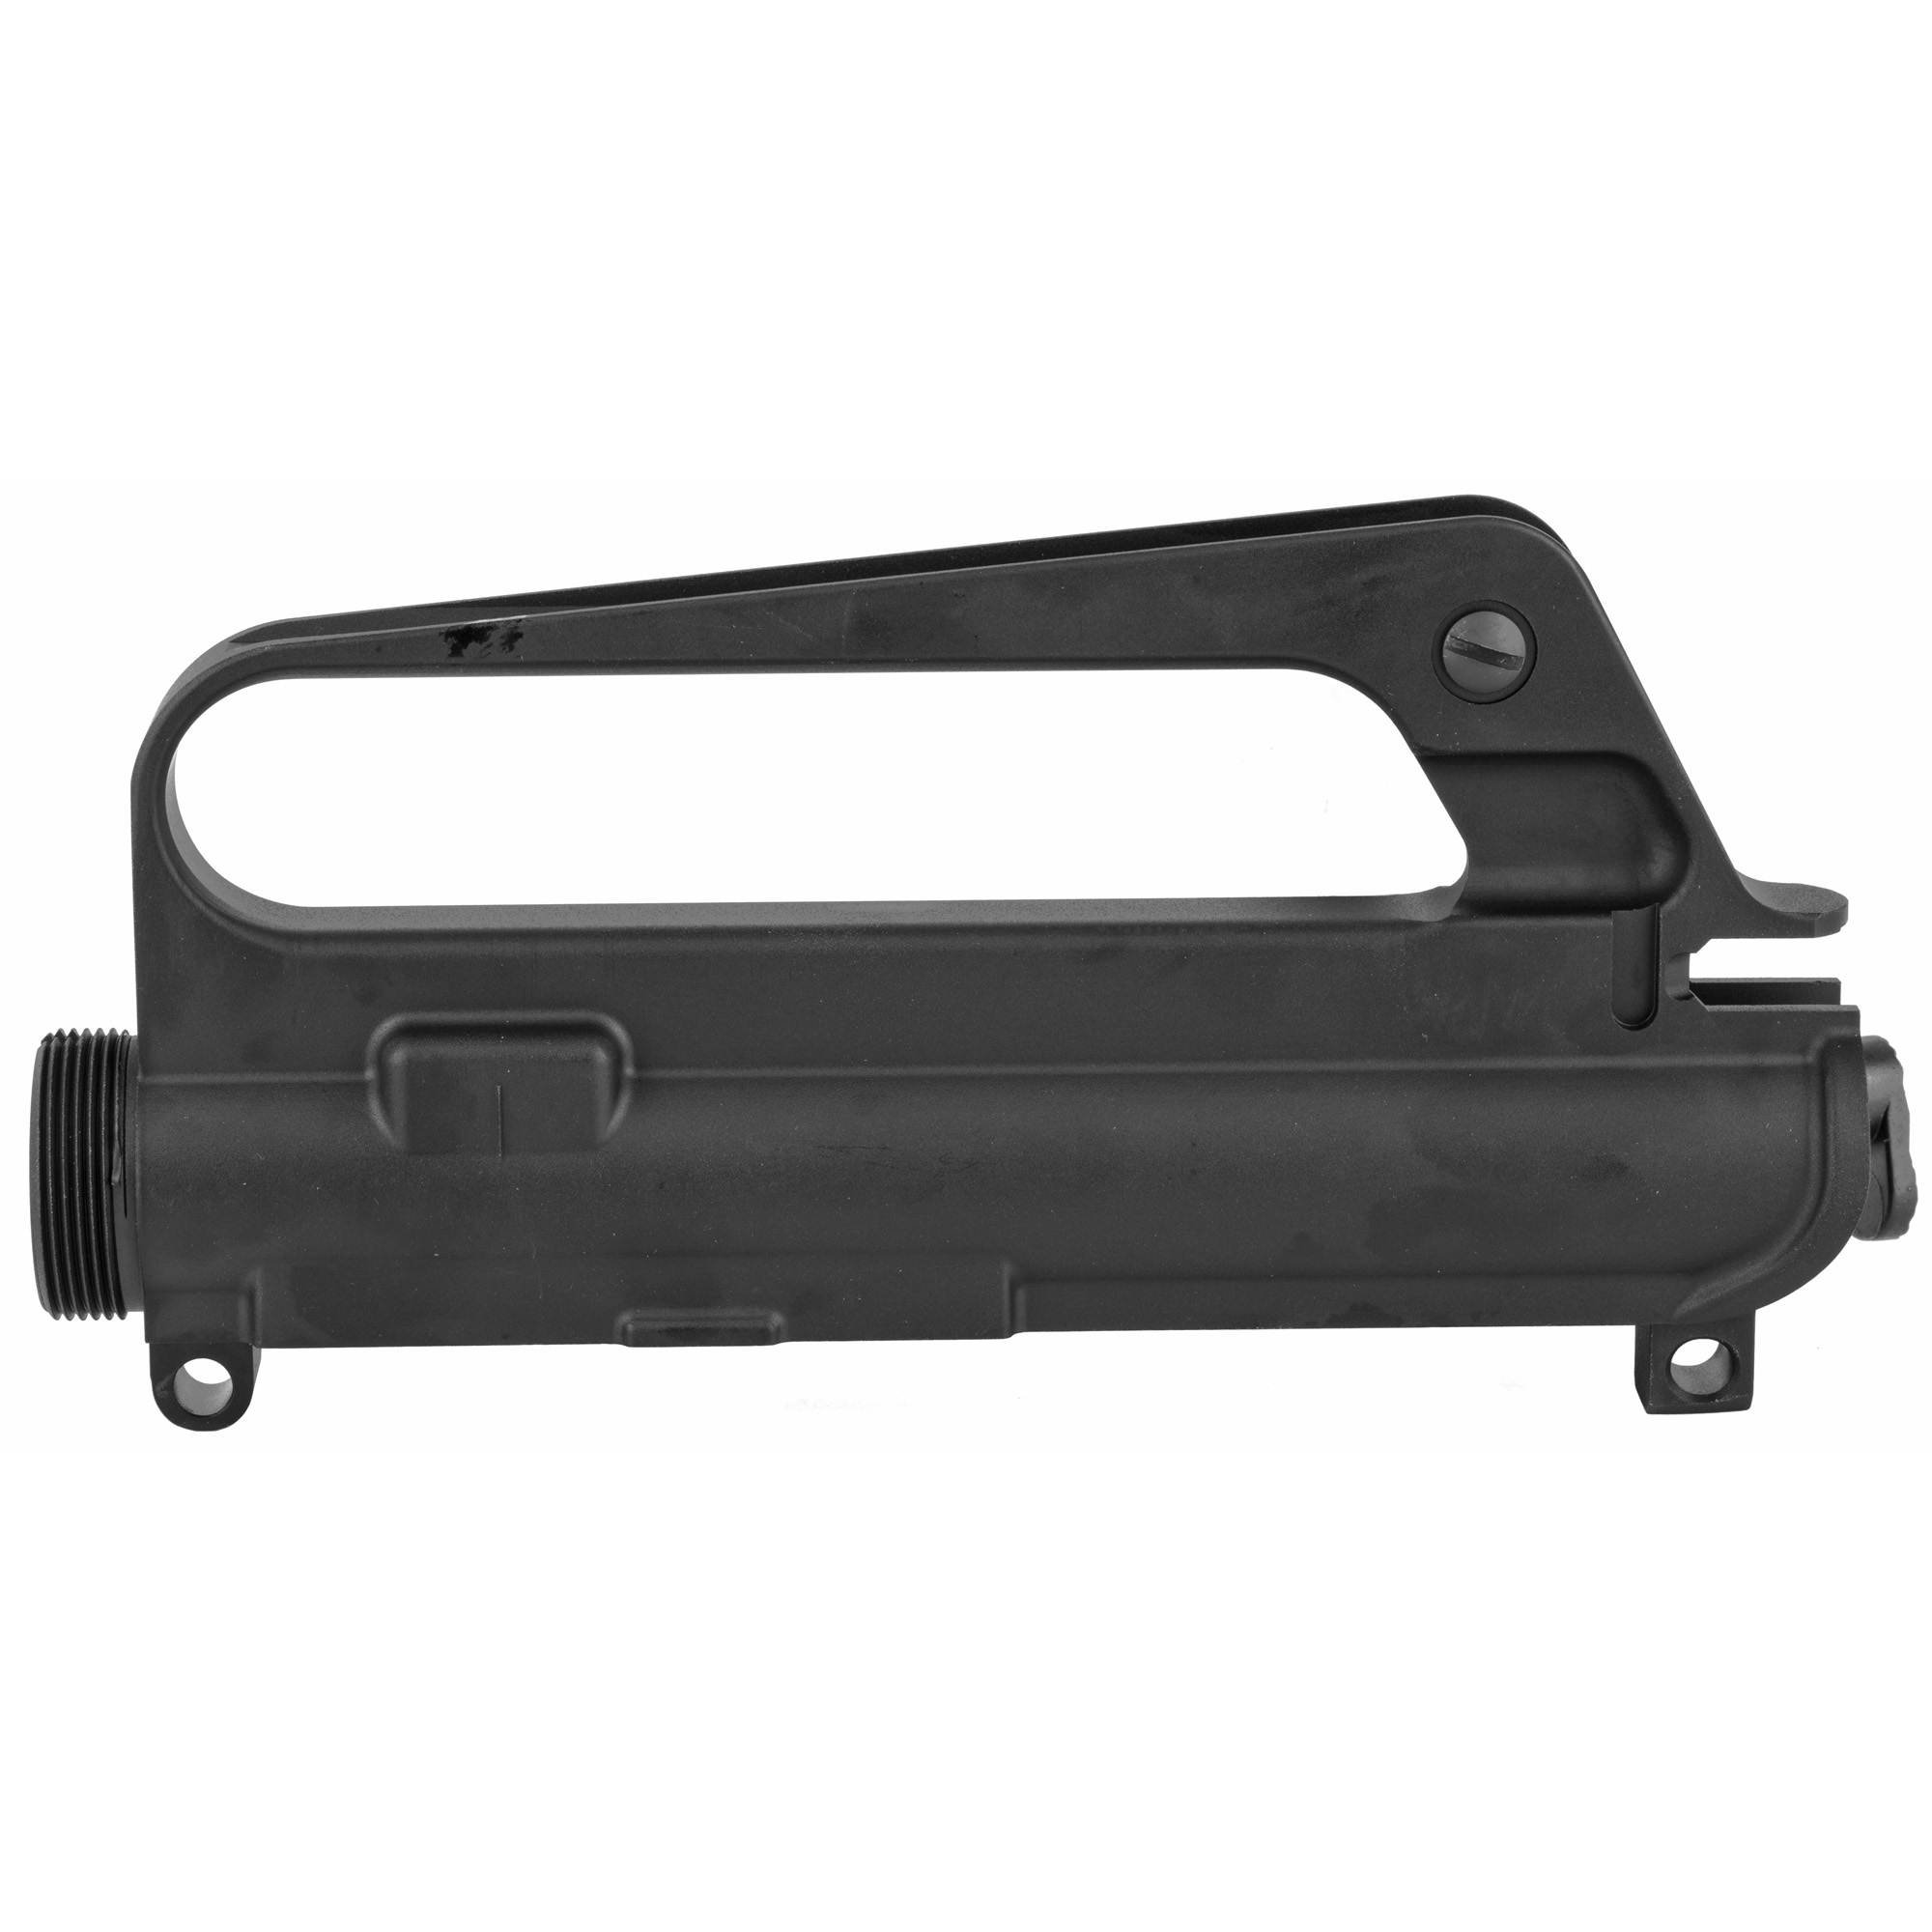 "Looking to build a high-quality retro looking AR? Start your project with a complete A1 upper receiver anodized. Comes with the standard features of a Mil-Spec upper receiver and is forged from 7075-T6 aluminum with a black hard coat anodized"" tough finish. The A1 carry handle includes A1 adjustable rear sight"" and perfect for building a retro M16A1E1"" M16A2 Carbine Model 723"" or a Model 733 Commando. The upper has a shell deflector and tear drop forward assist and dust cover. The C7 style carry handle allows mounting a scope from the era for a retro look. This upper does not have M4 feed ramps in keeping with the military A1 uppers. Use with any Mil-Spec lower receiver."